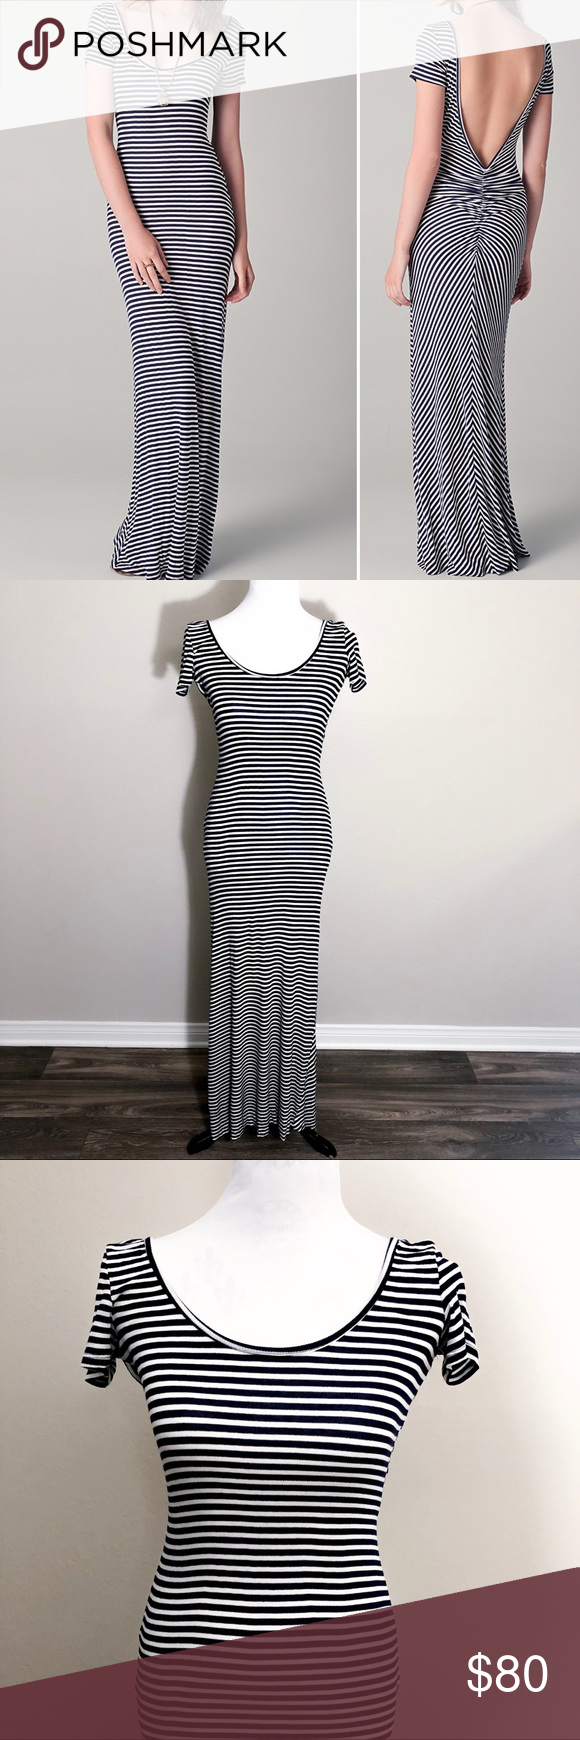 "Rachel Pally Quentin Dress in Navy Stripe Scoop Neck Jersey Maxi Deep V and Ruching Back Ribbed Banding at Neckline Semi Sheer  Condition: Used. No Visual Defects. Measurements are approx. and of item laying flat. Length: 57"" #078 Rachel Pally Dresses Maxi"